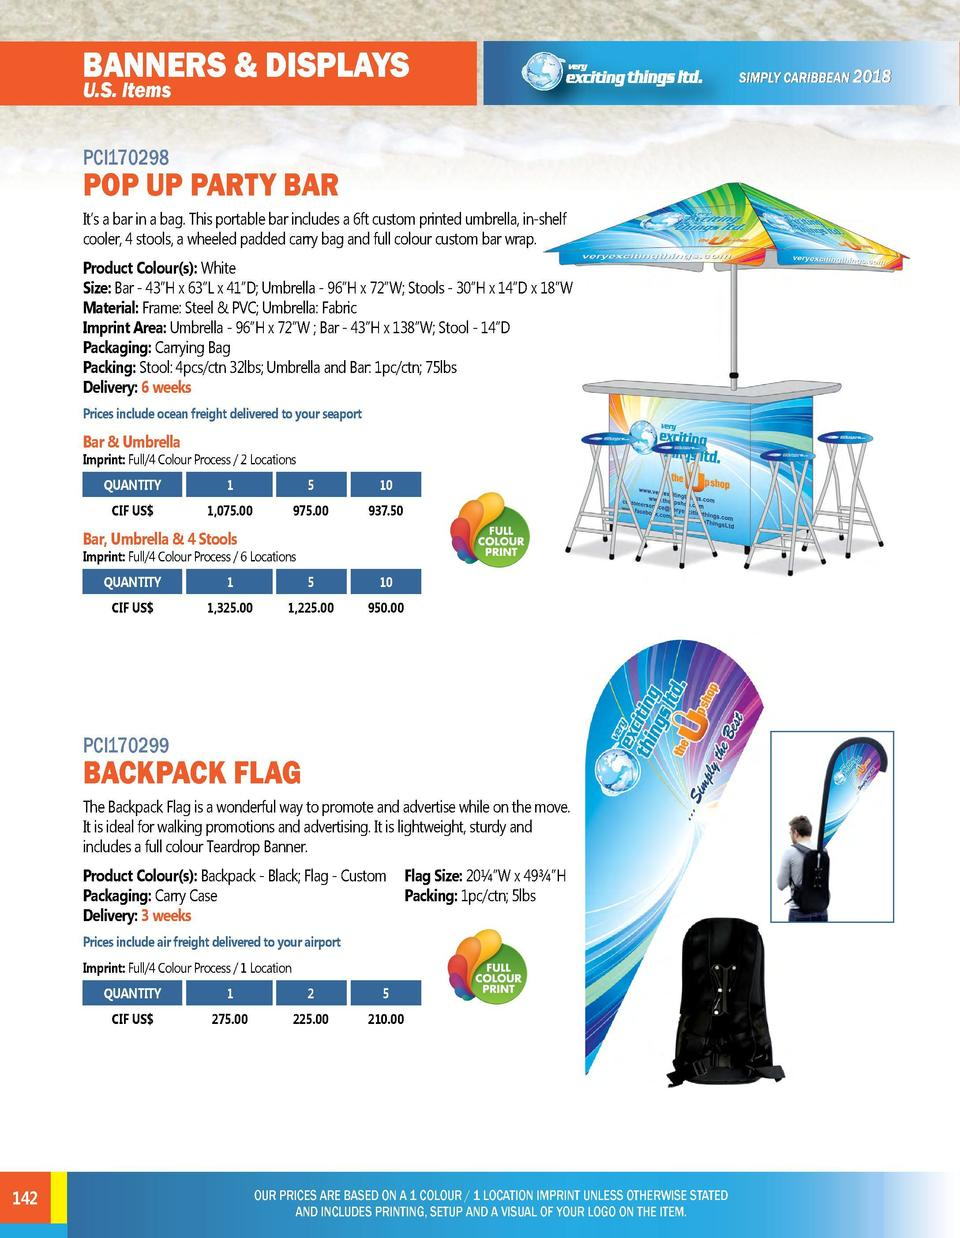 BANNERS   DISPLAYS U.S. Items  BANNERS   DISPLAYS U.S. Items PCI170300  CUSTOM PARTY BEER PONG TABLE  PCI170298  POP UP PA...